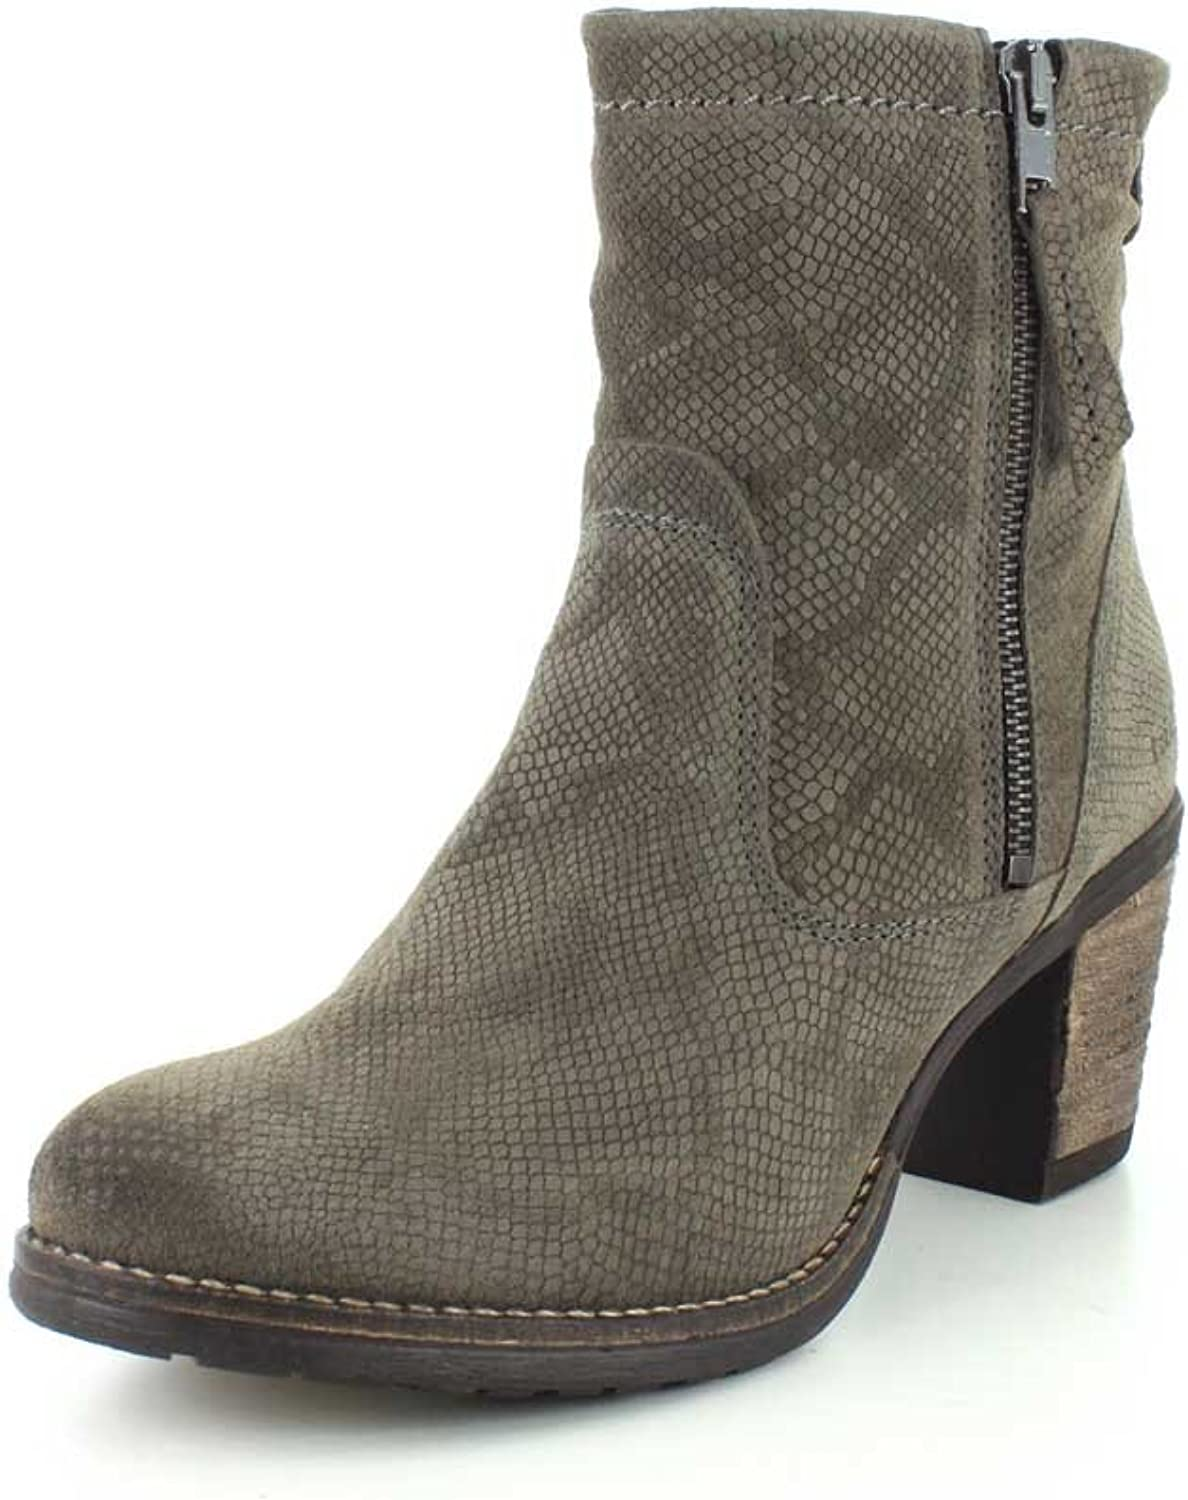 Taos Women's, Standout Ankle Boot